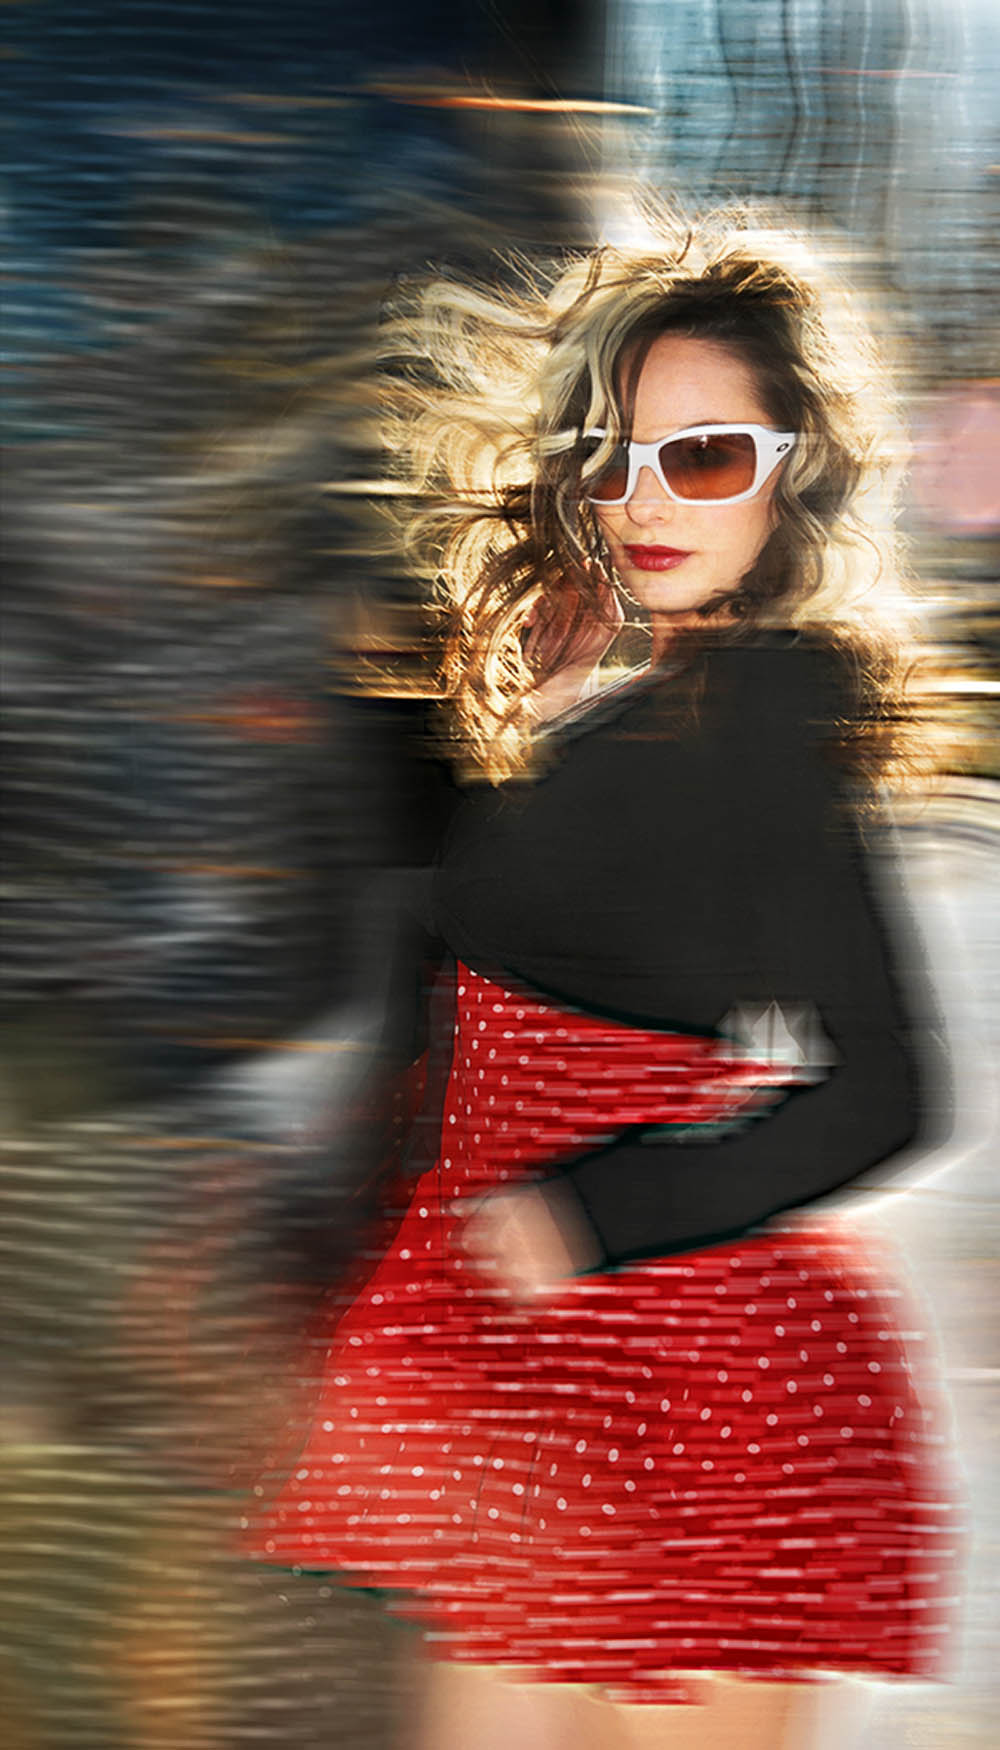 Red dress wind in motion